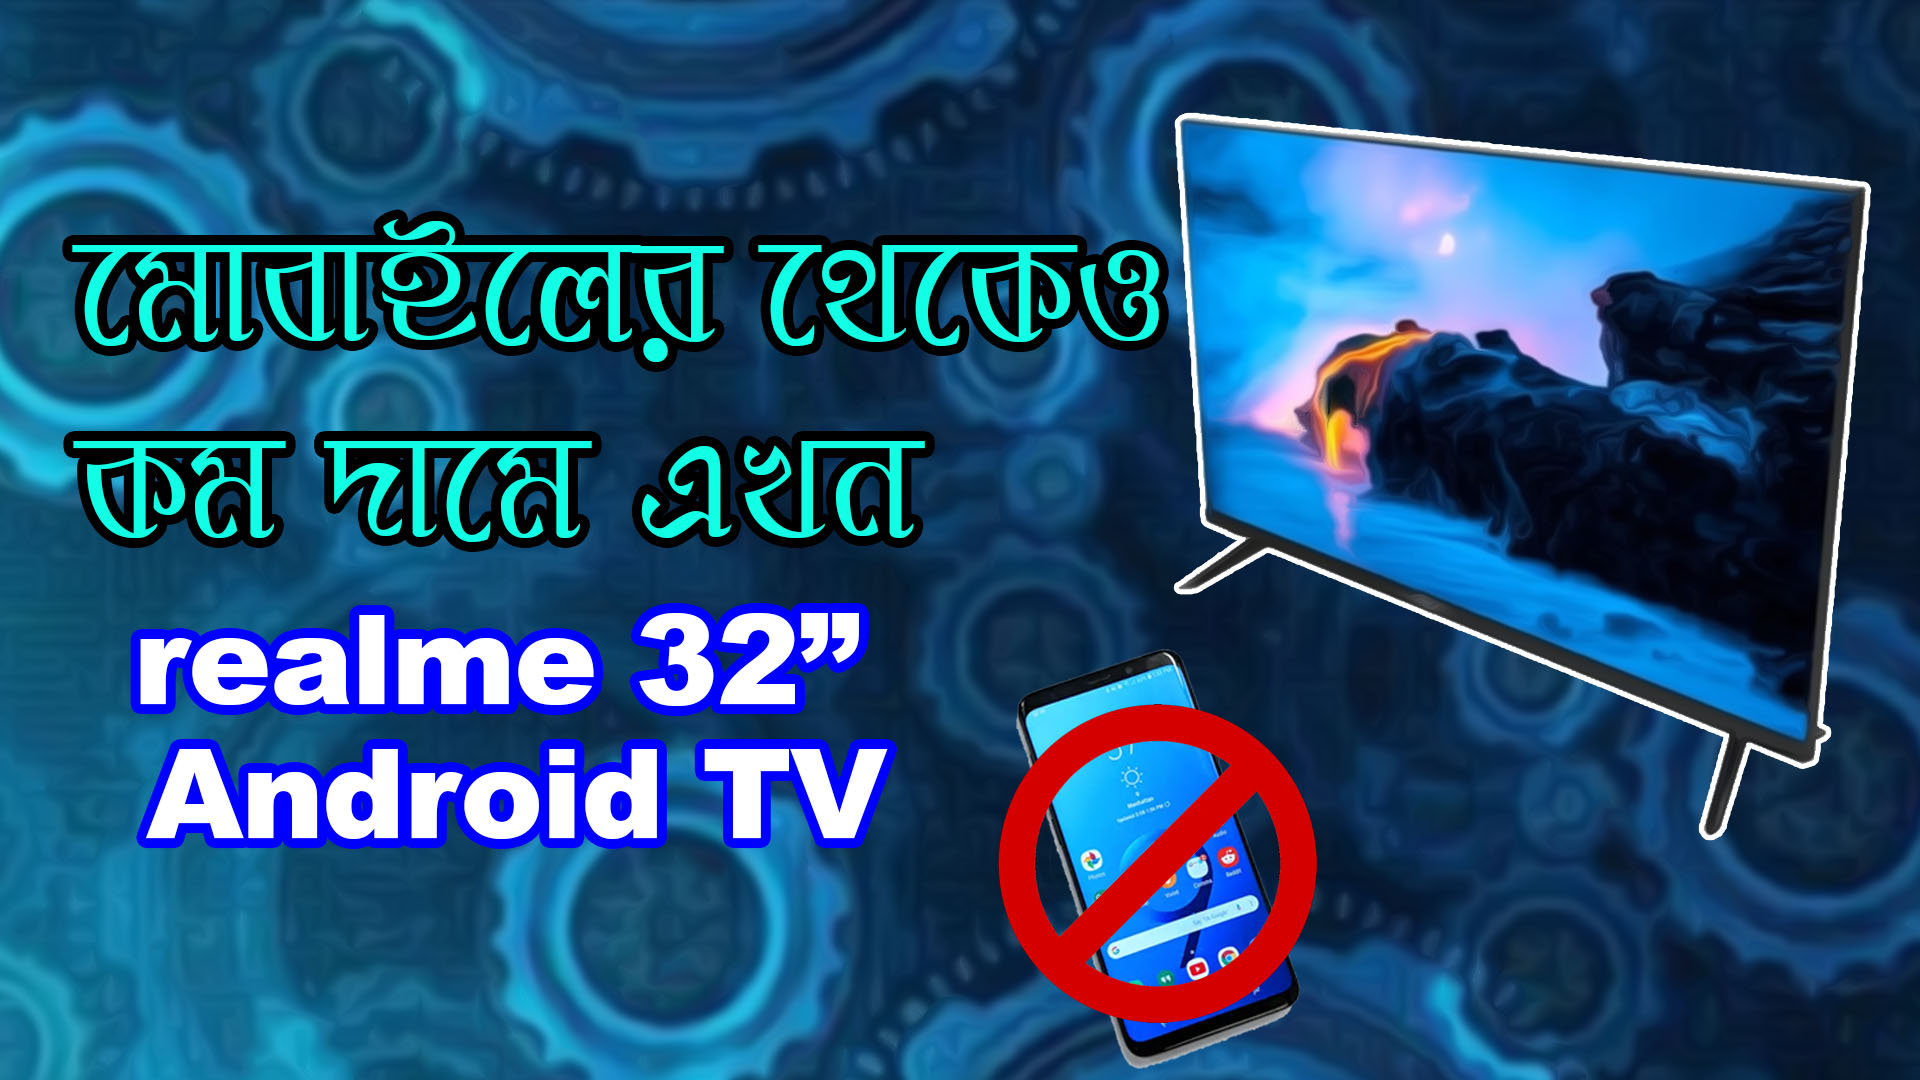 Best Android TV Price in bangladesh